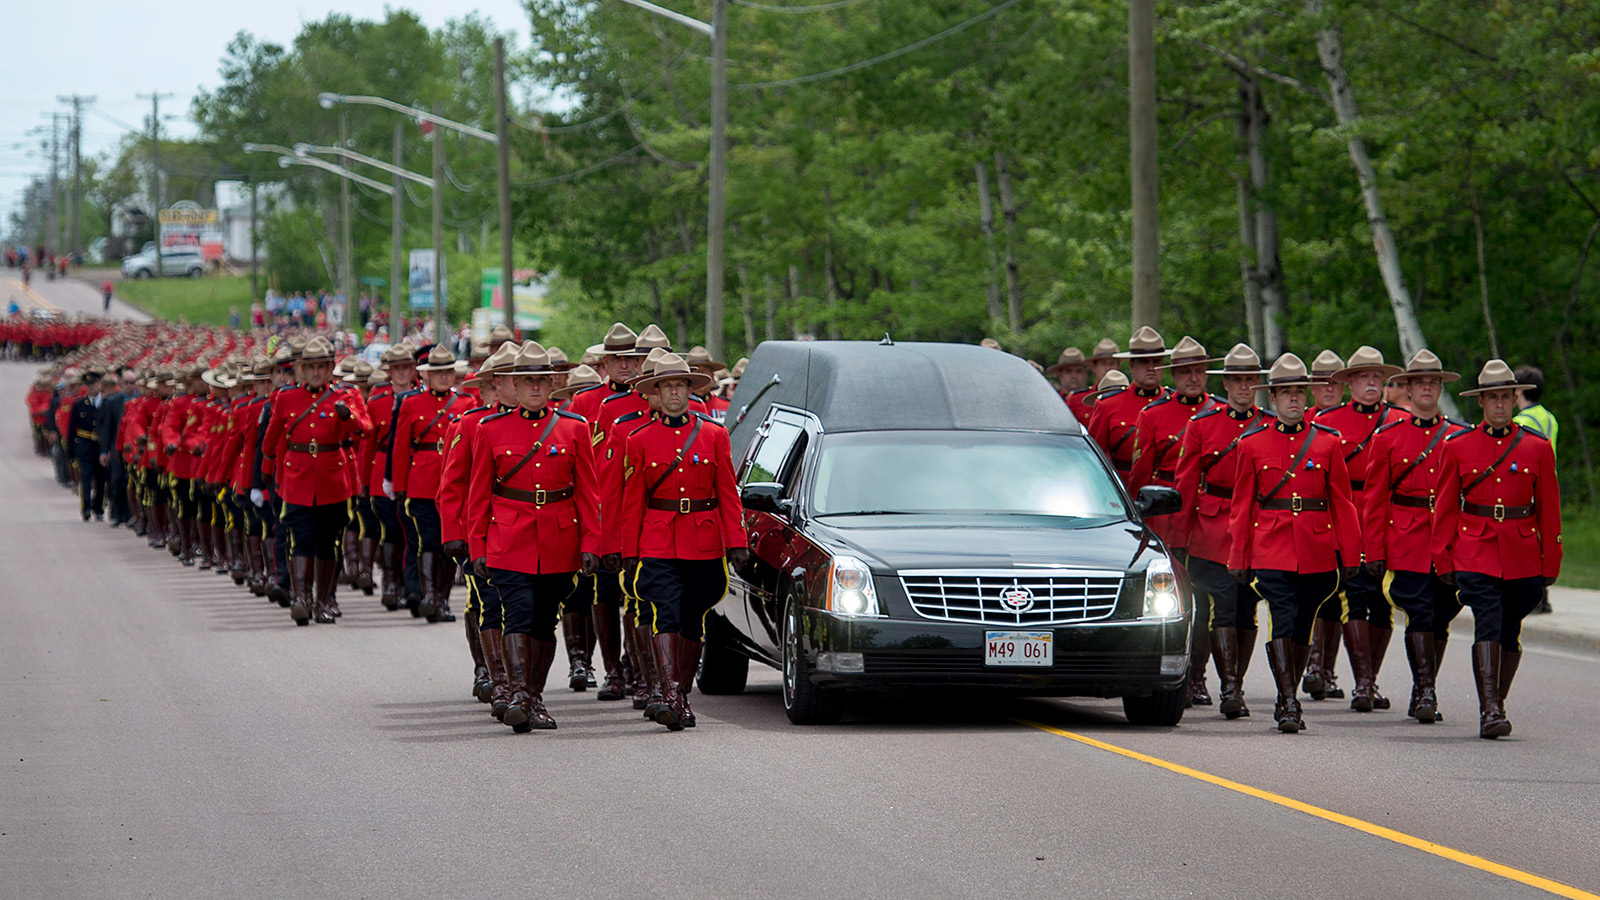 The funeral procession for the three RCMP officers who were killed in the line of duty in Moncton, N.B. (Andrew Vaughan/CP)